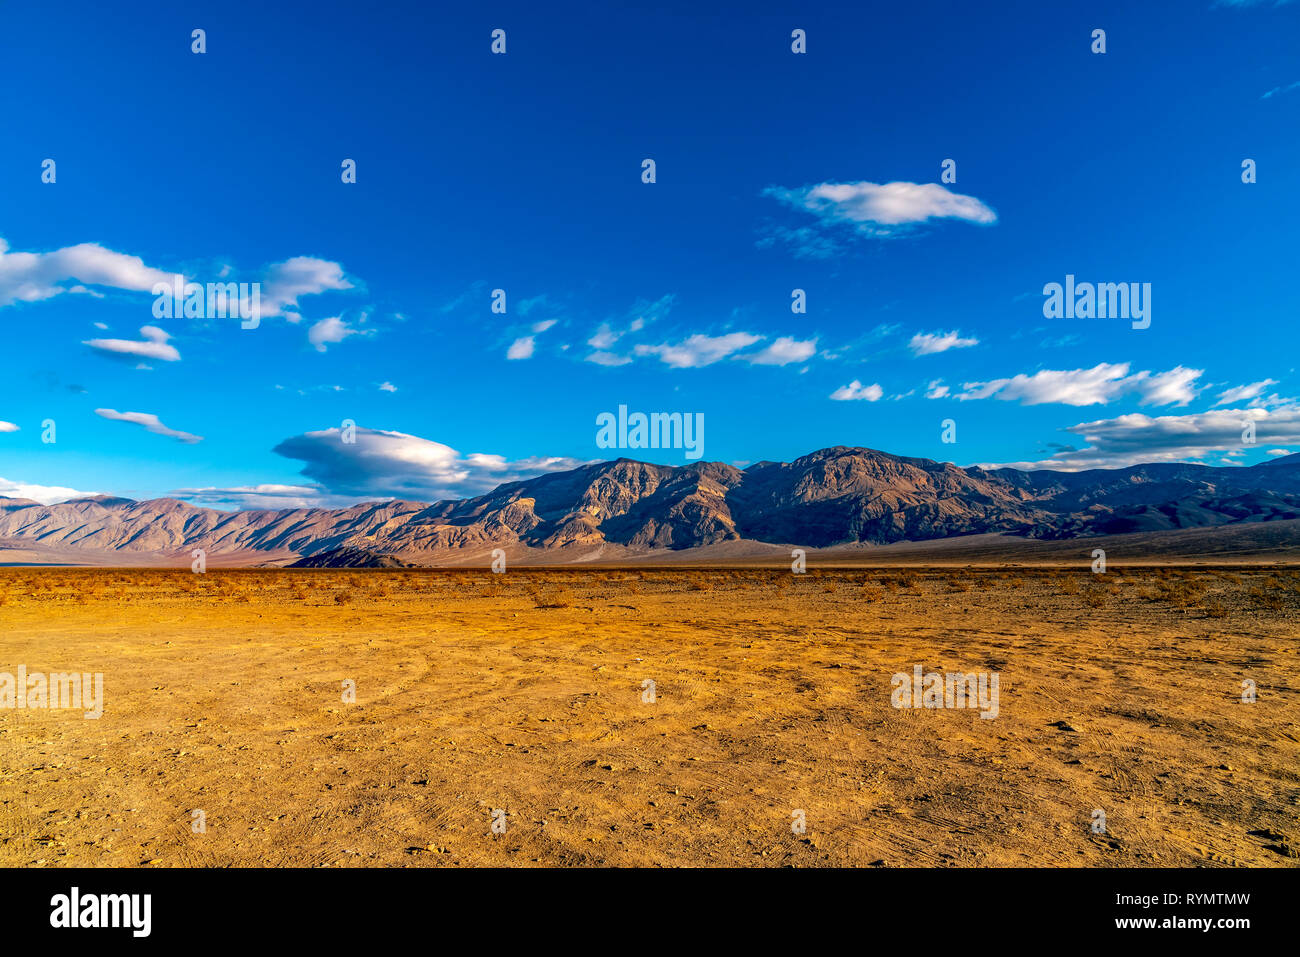 Early morning in the Mojave Desert, barren valley and mountains.  Yellow fields. - Stock Image